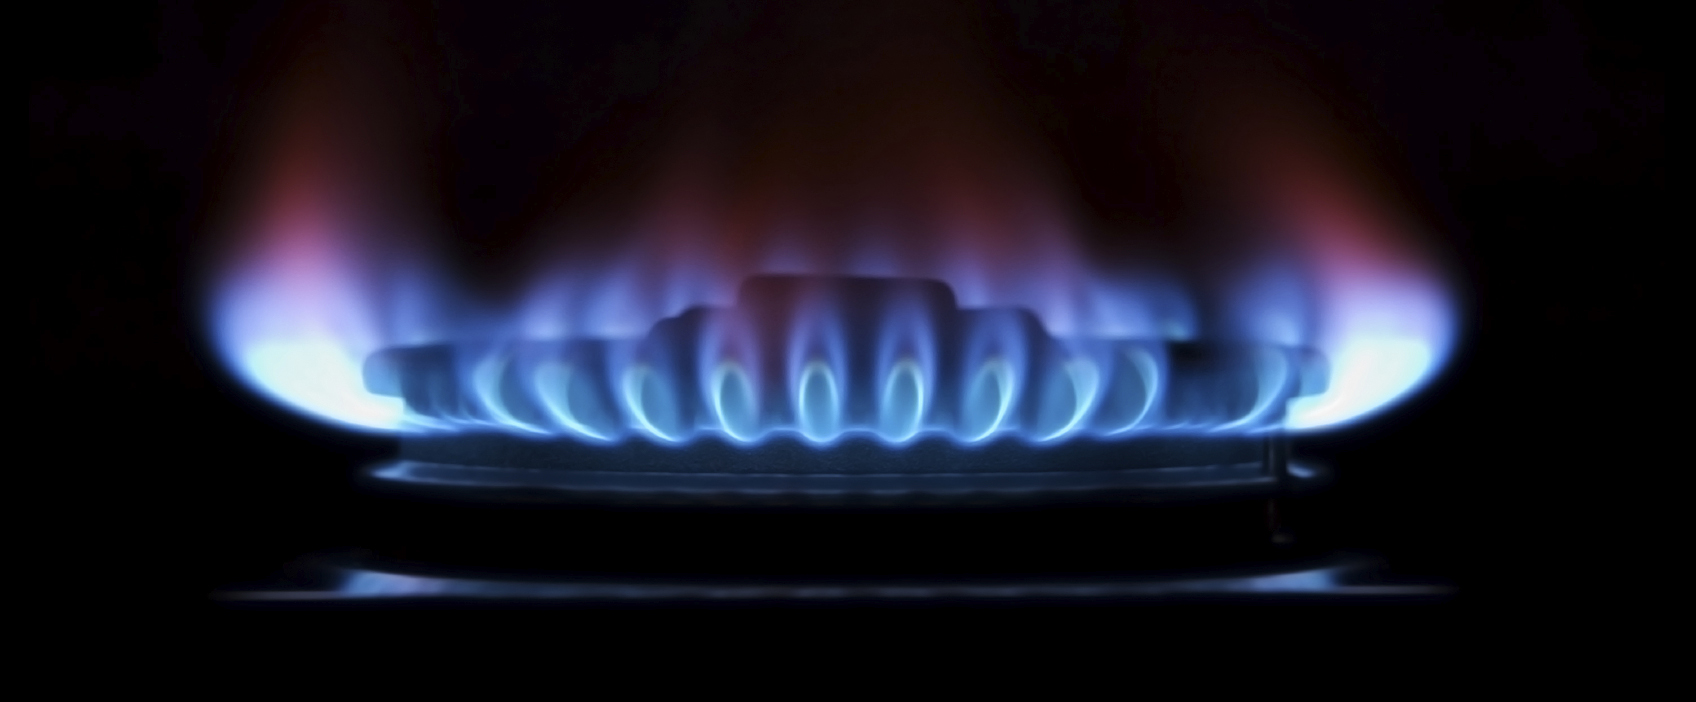 Disadvantages Of Natural Gas >> Pros and Cons of Natural Gas - Santa Energy Corporation